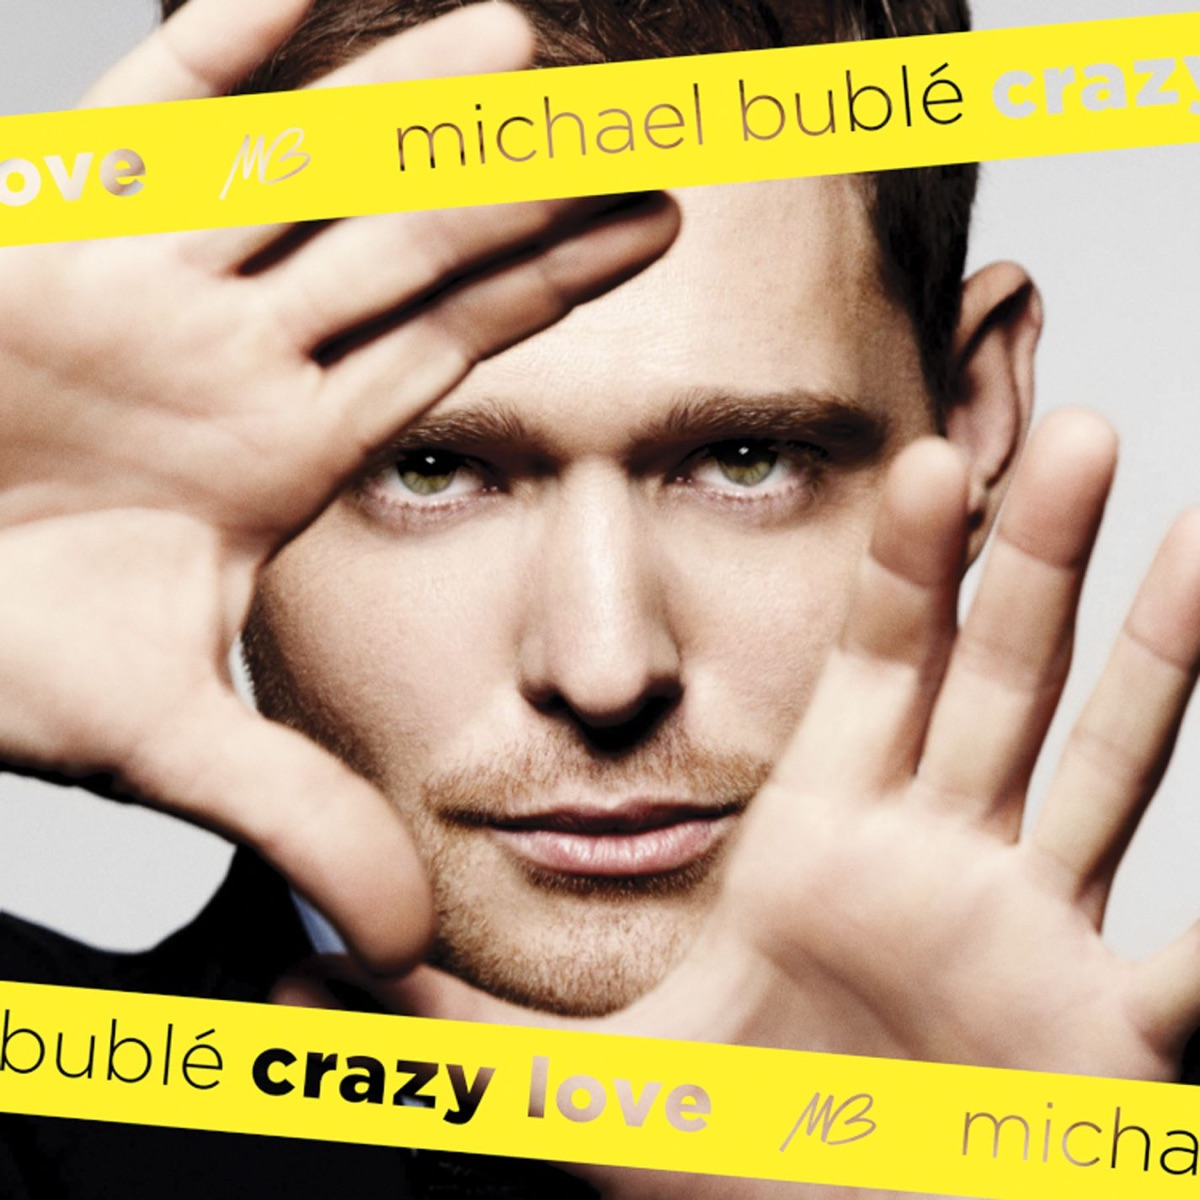 Crazy Love Michael Bublé CD cover